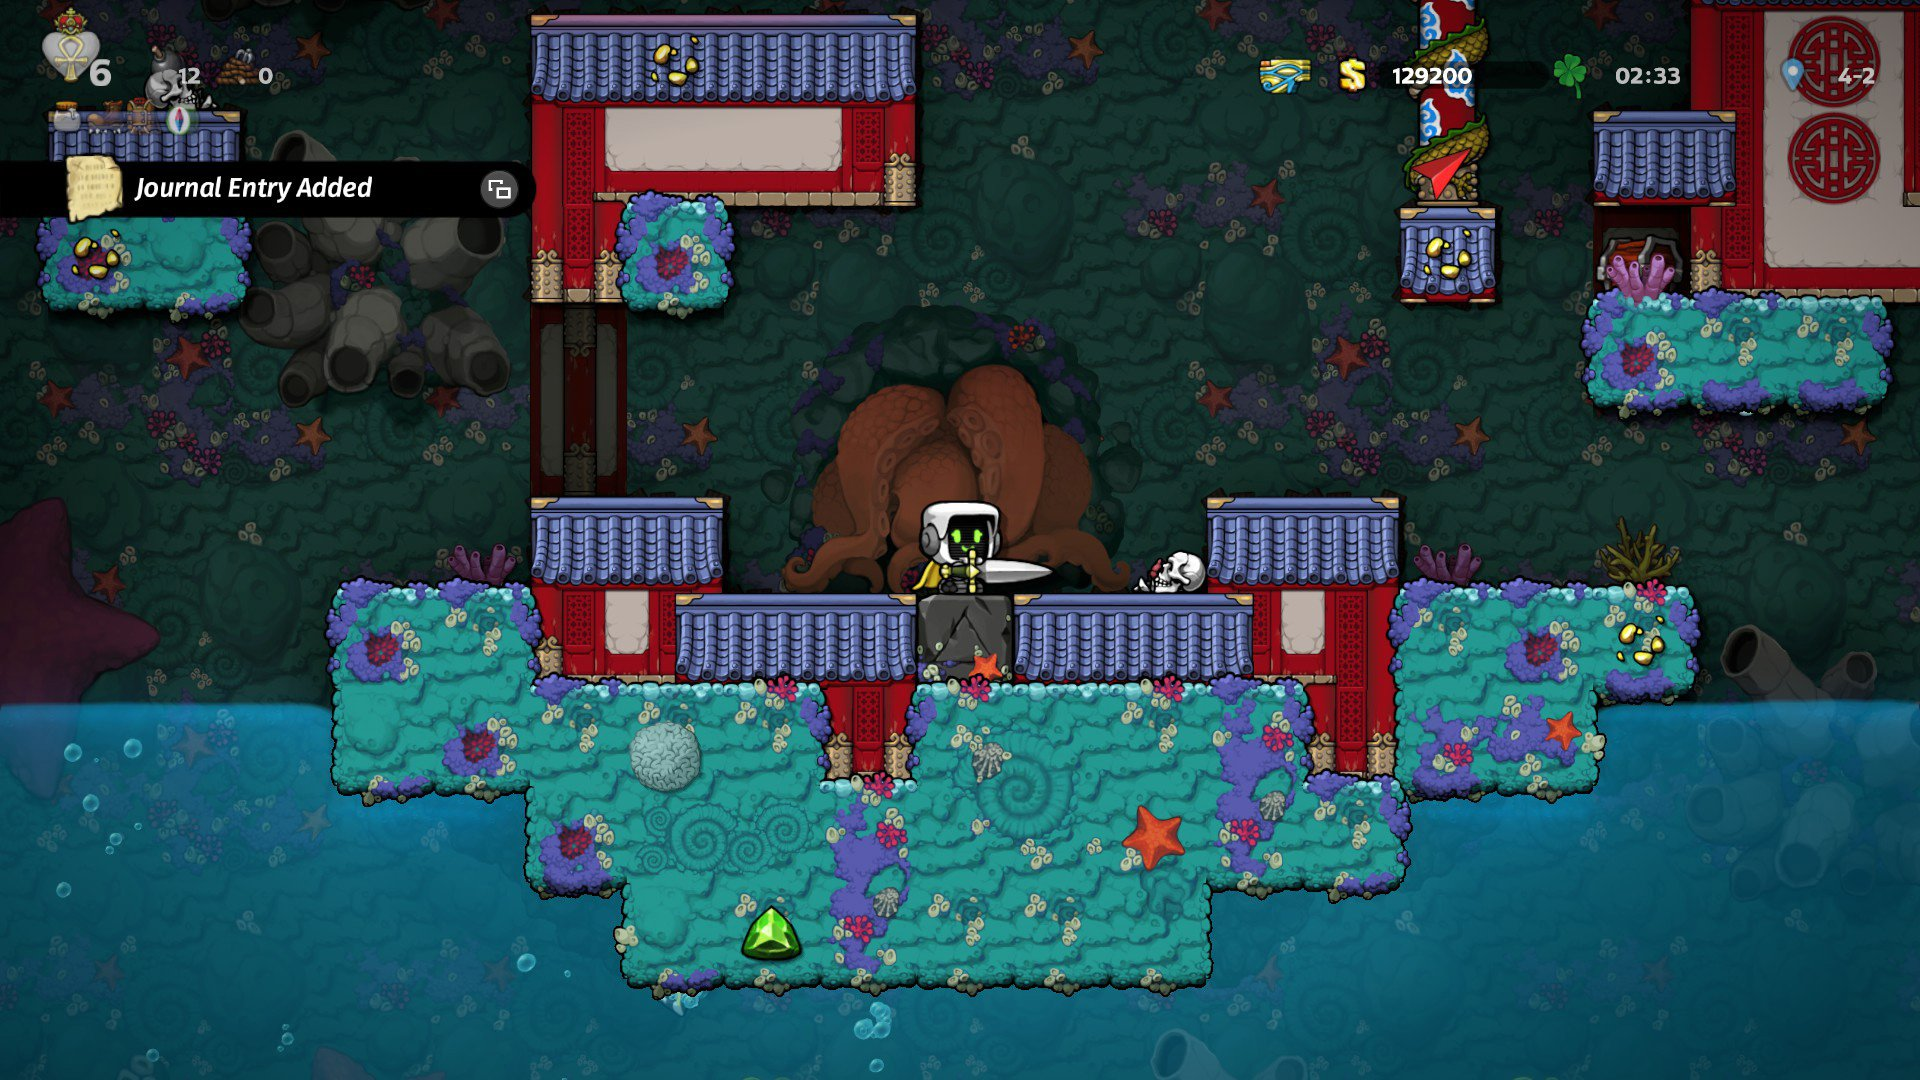 How to pull the Excalibur sword out of the stone in Spelunky 2